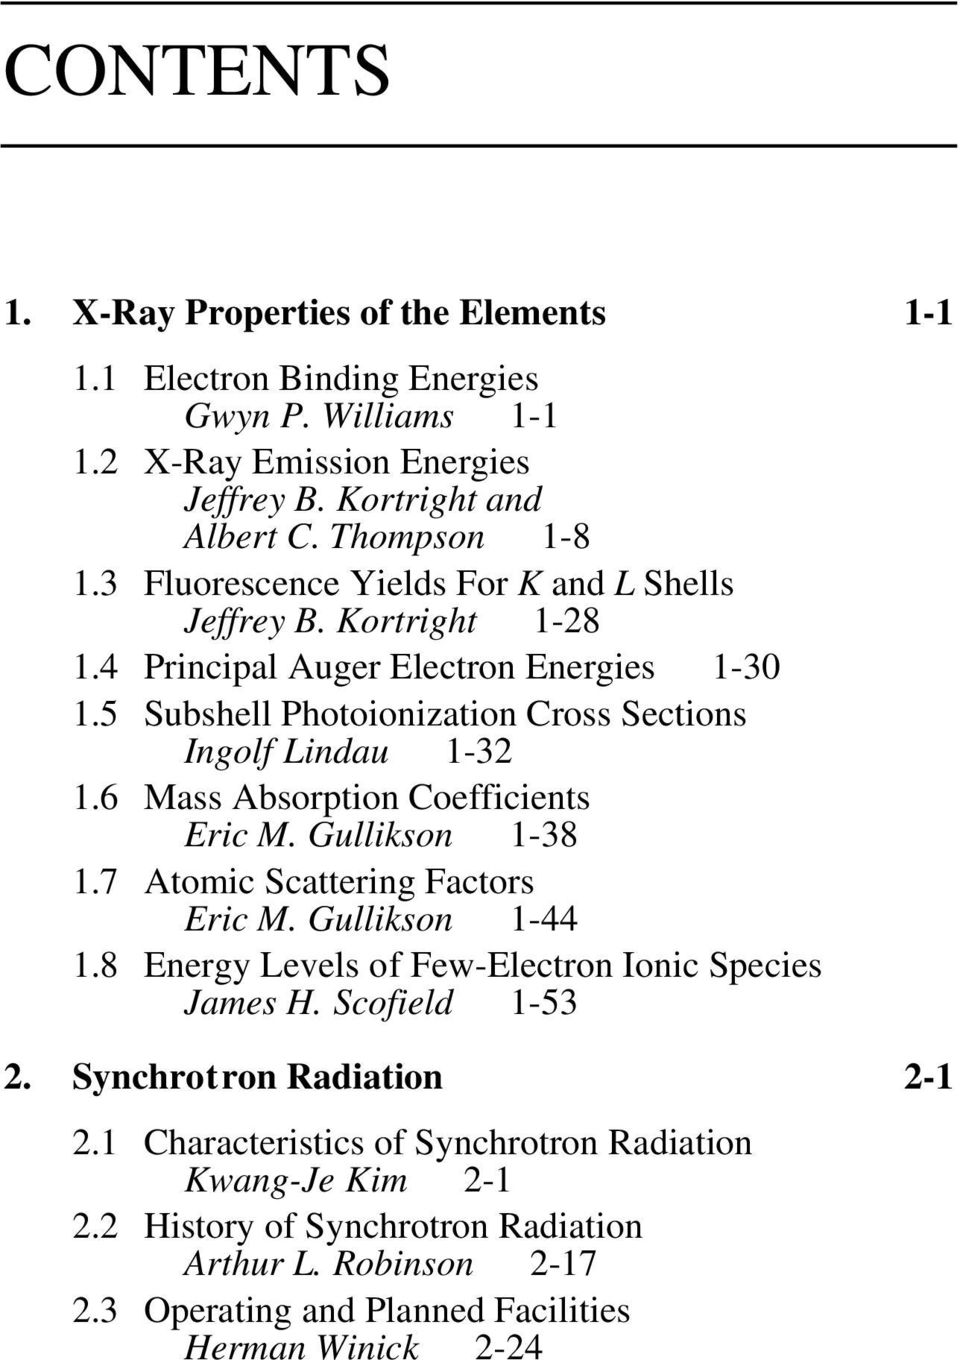 6 Mass Absorption Coefficients Eric M. Gullikson 1-38 1.7 Atomic Scattering Factors Eric M. Gullikson 1-44 1.8 Energy Levels of Few-Electron Ionic Species James H. Scofield 1-53 2.